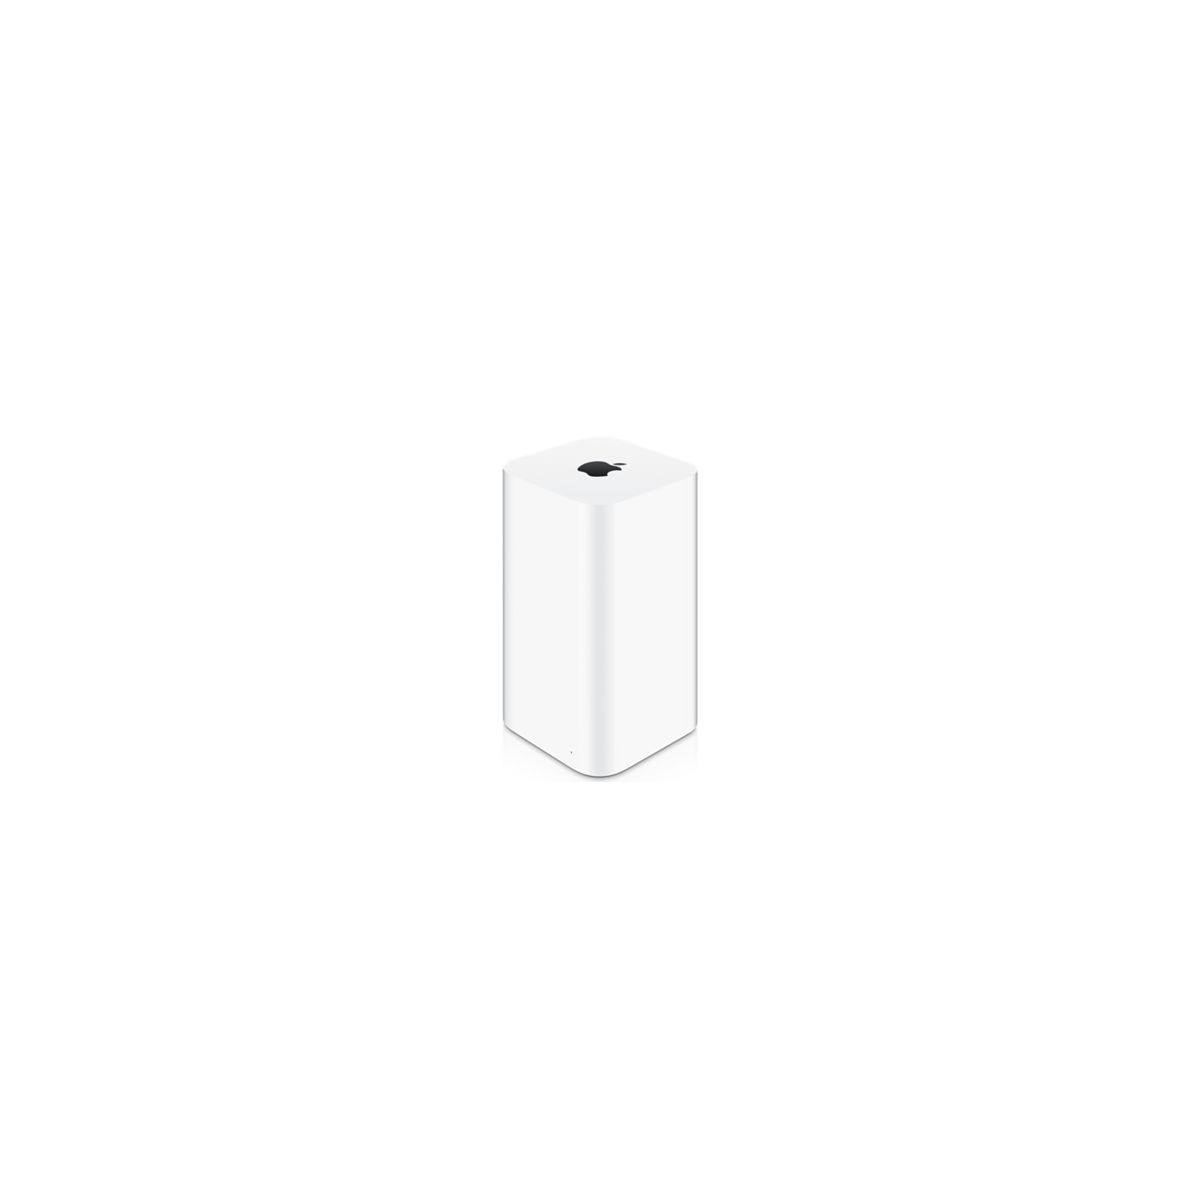 Disque dur externe APPLE AirPort Time Capsule 3To